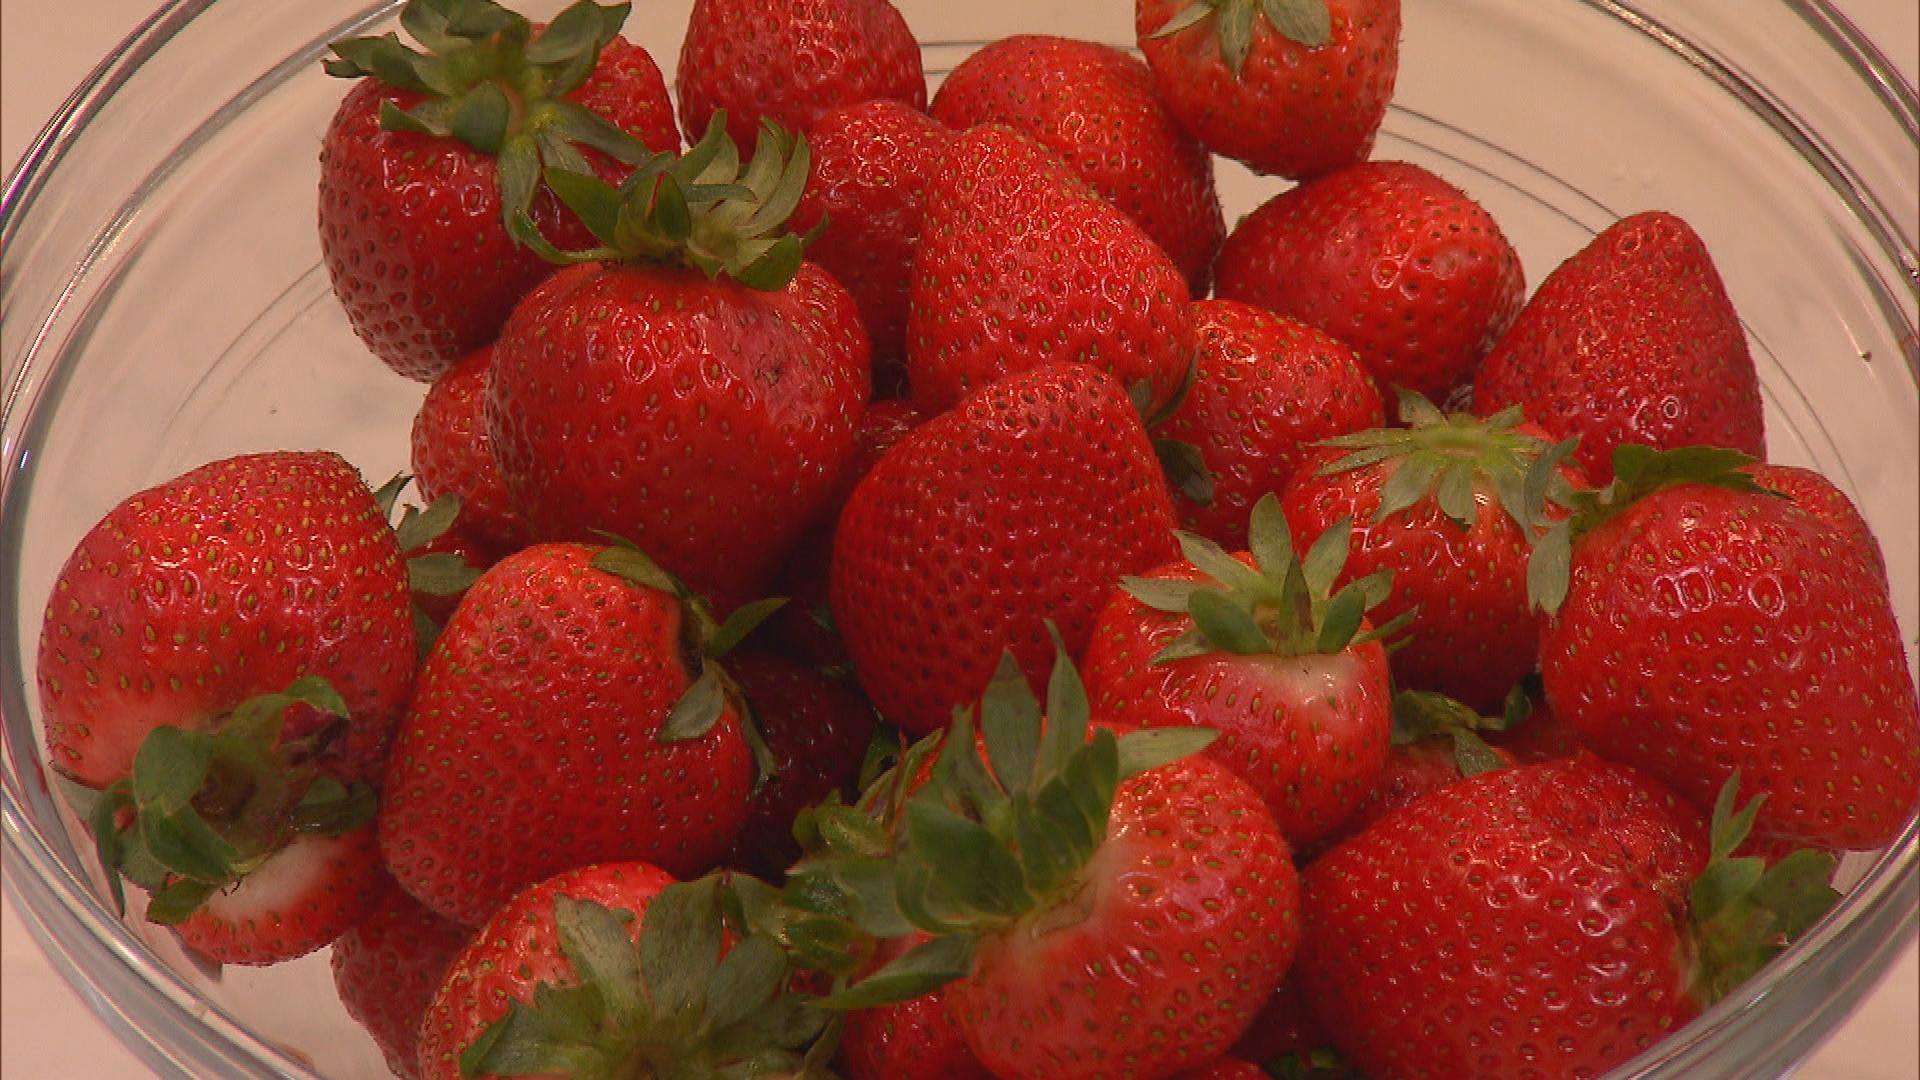 Broccoli, Kale and Strawberries Can Help Ward Off Colds and Flu